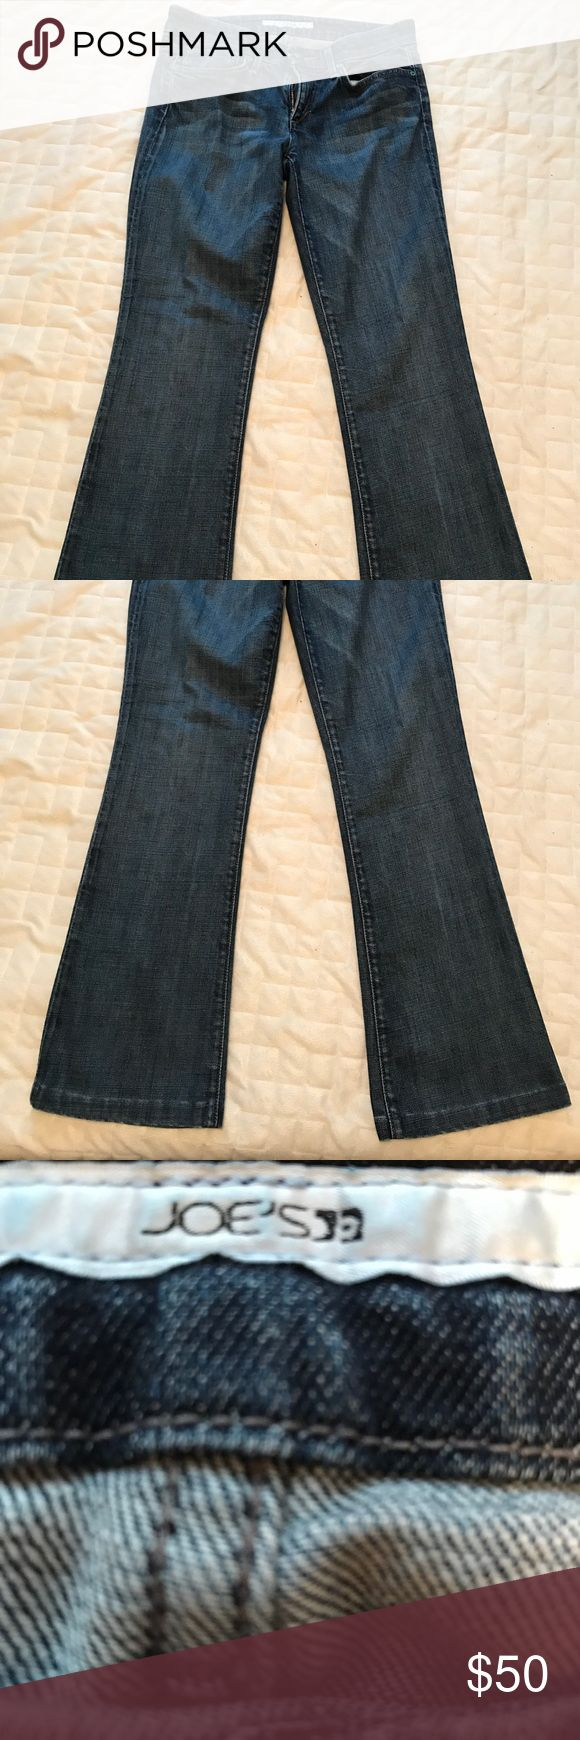 Joe jeans Joe jeans in Provocateur in Meg style. Great condition. Size 27. Pictures with model are from website not actual jeans for sale. Joe's Jeans Jeans